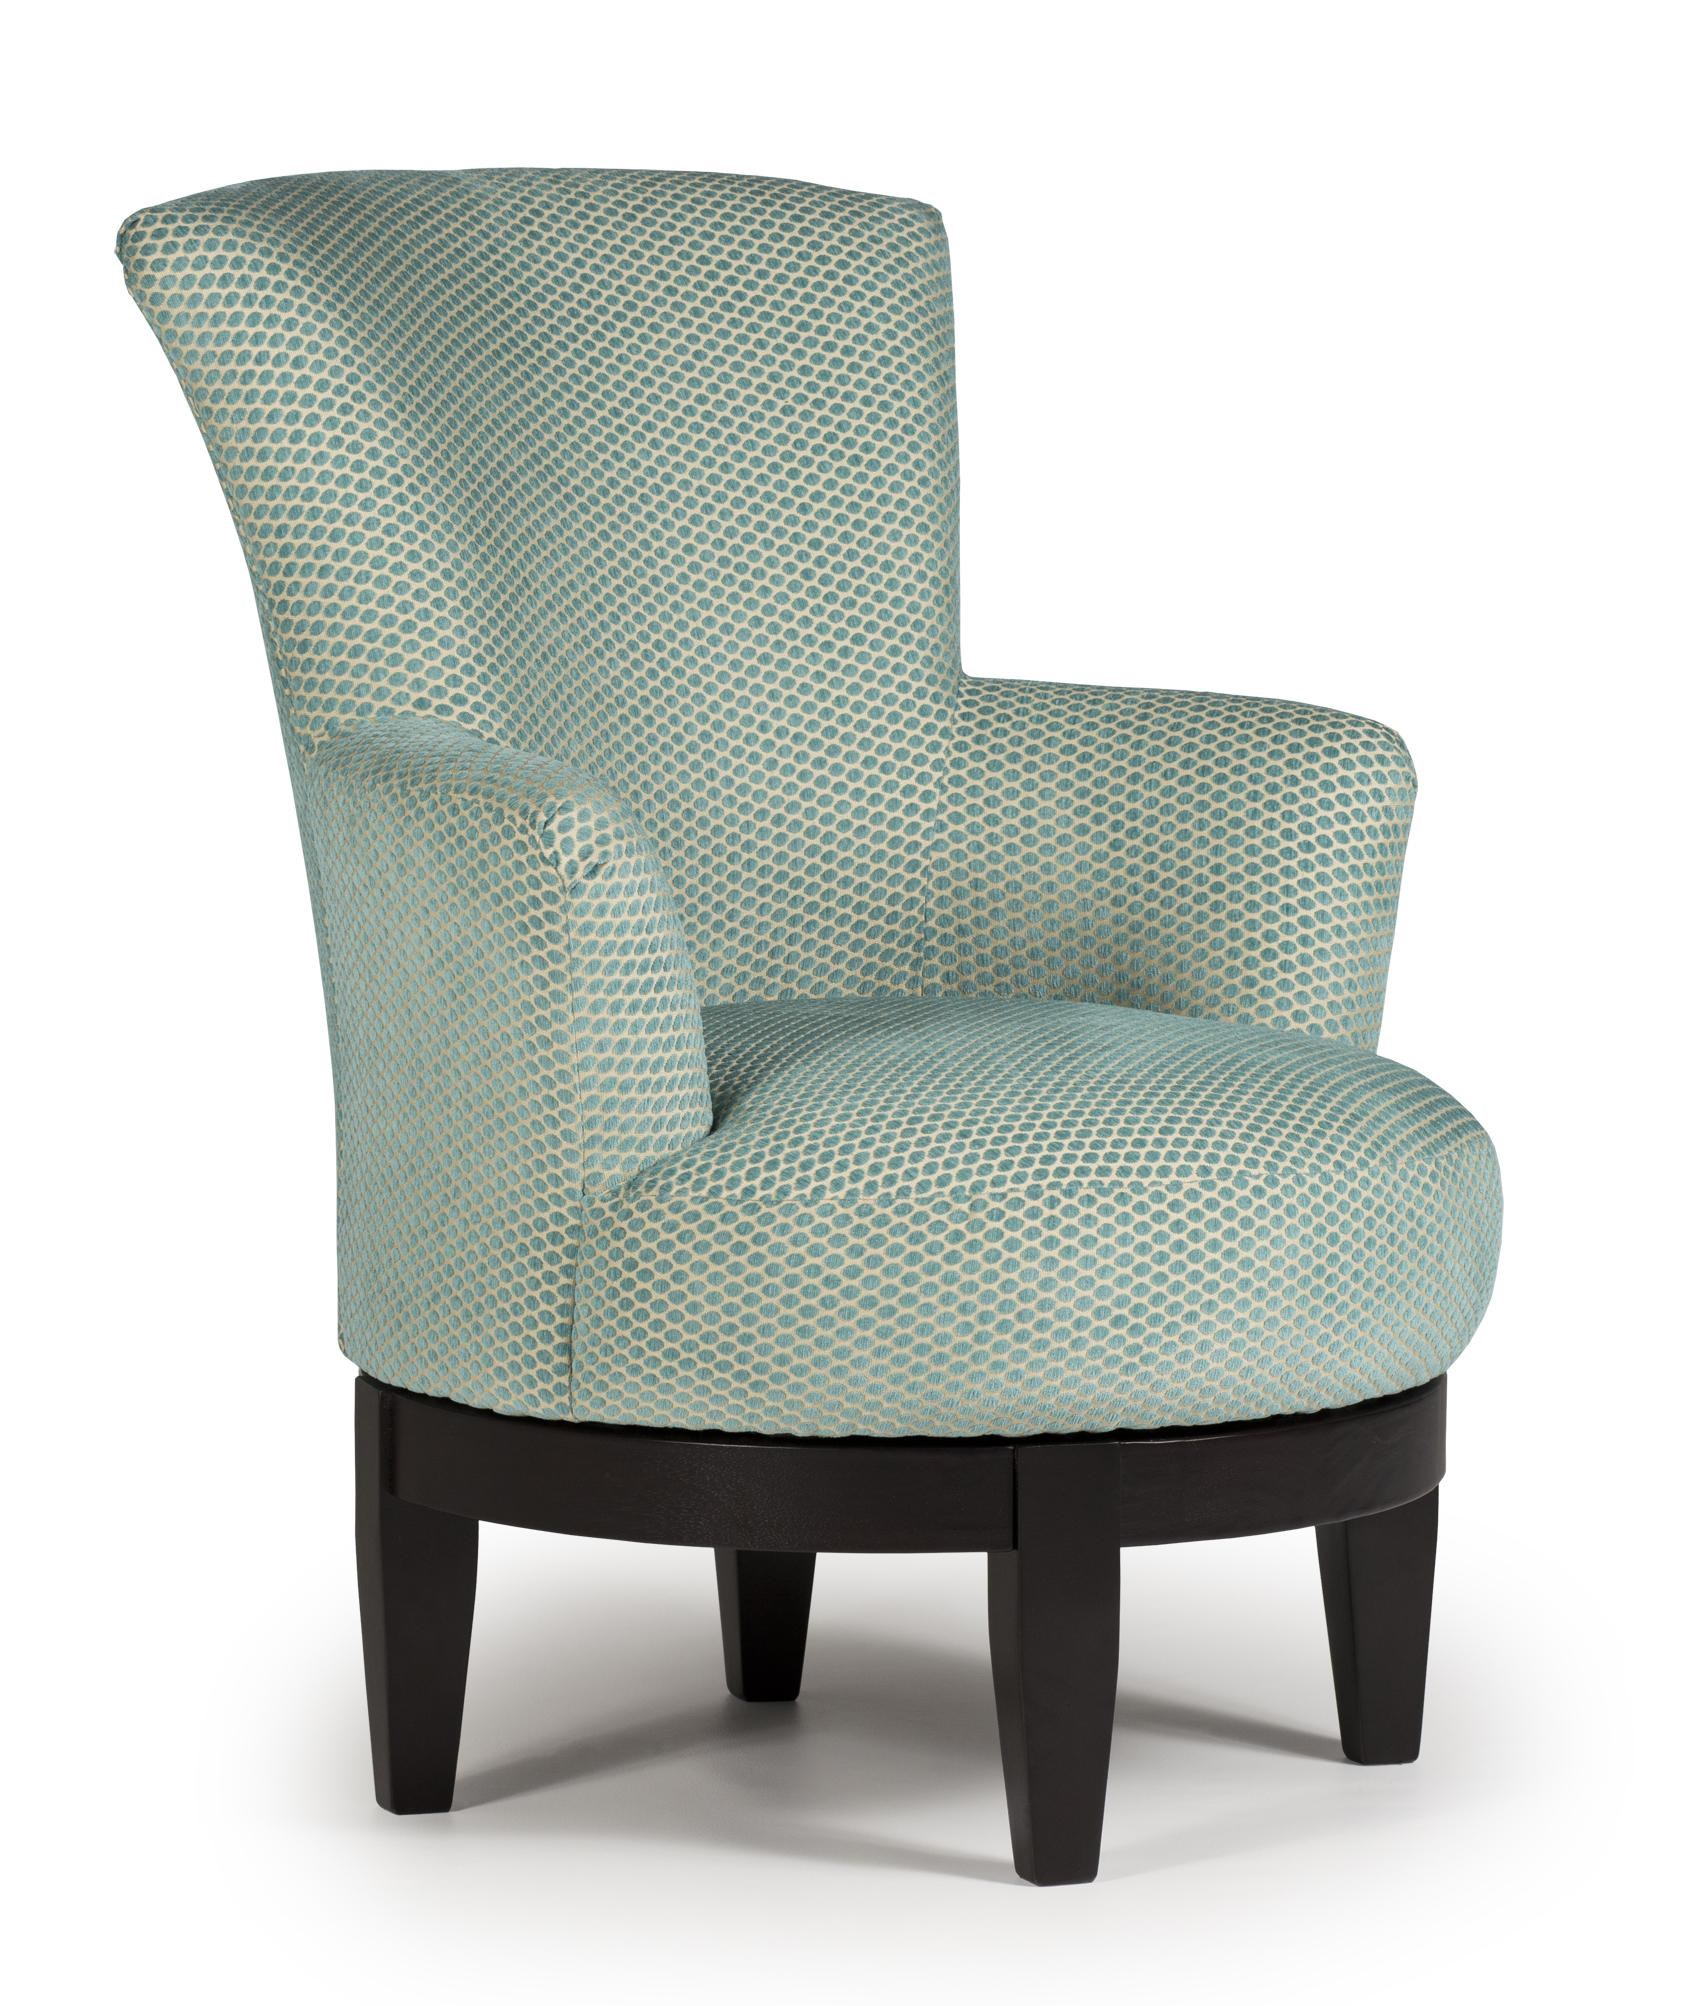 Best Home Furnishings Chairs   Swivel Barrel Justine Swivel Chair With  Chic, Flared Arms